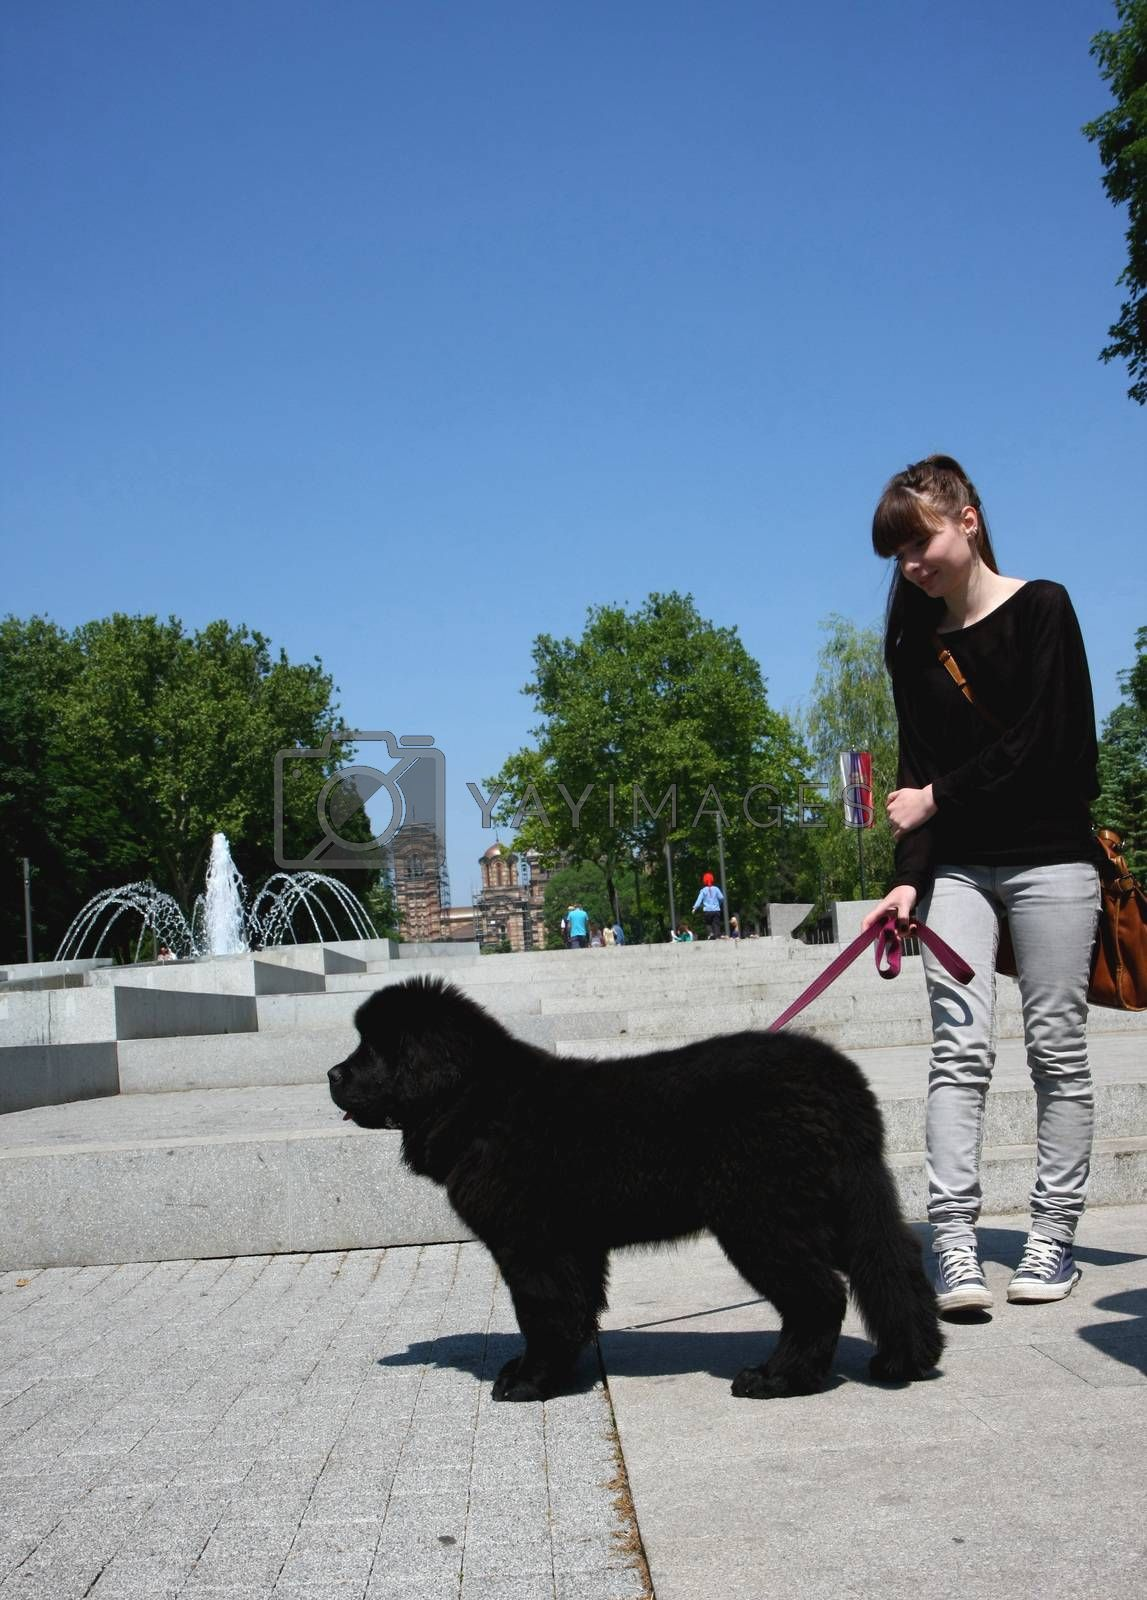 Cute Newfoundlander puppy with girl in public park